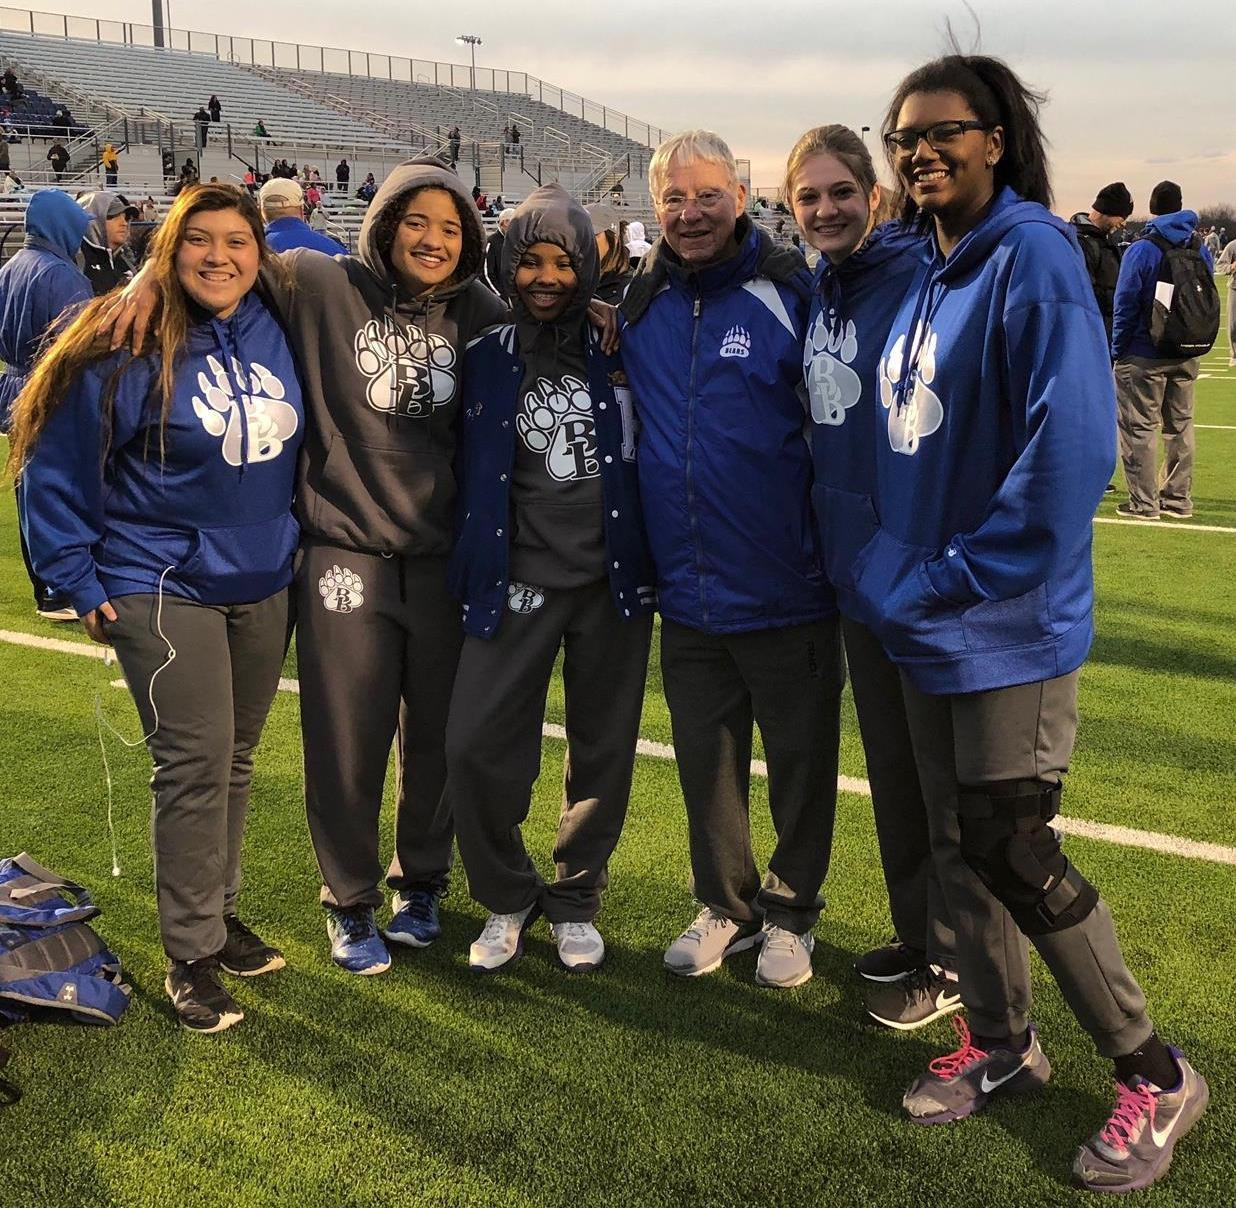 Brewer High School recently sponsored the annual Ben Davis Relays, named for former Athletic Director and Coach Ben Davis.